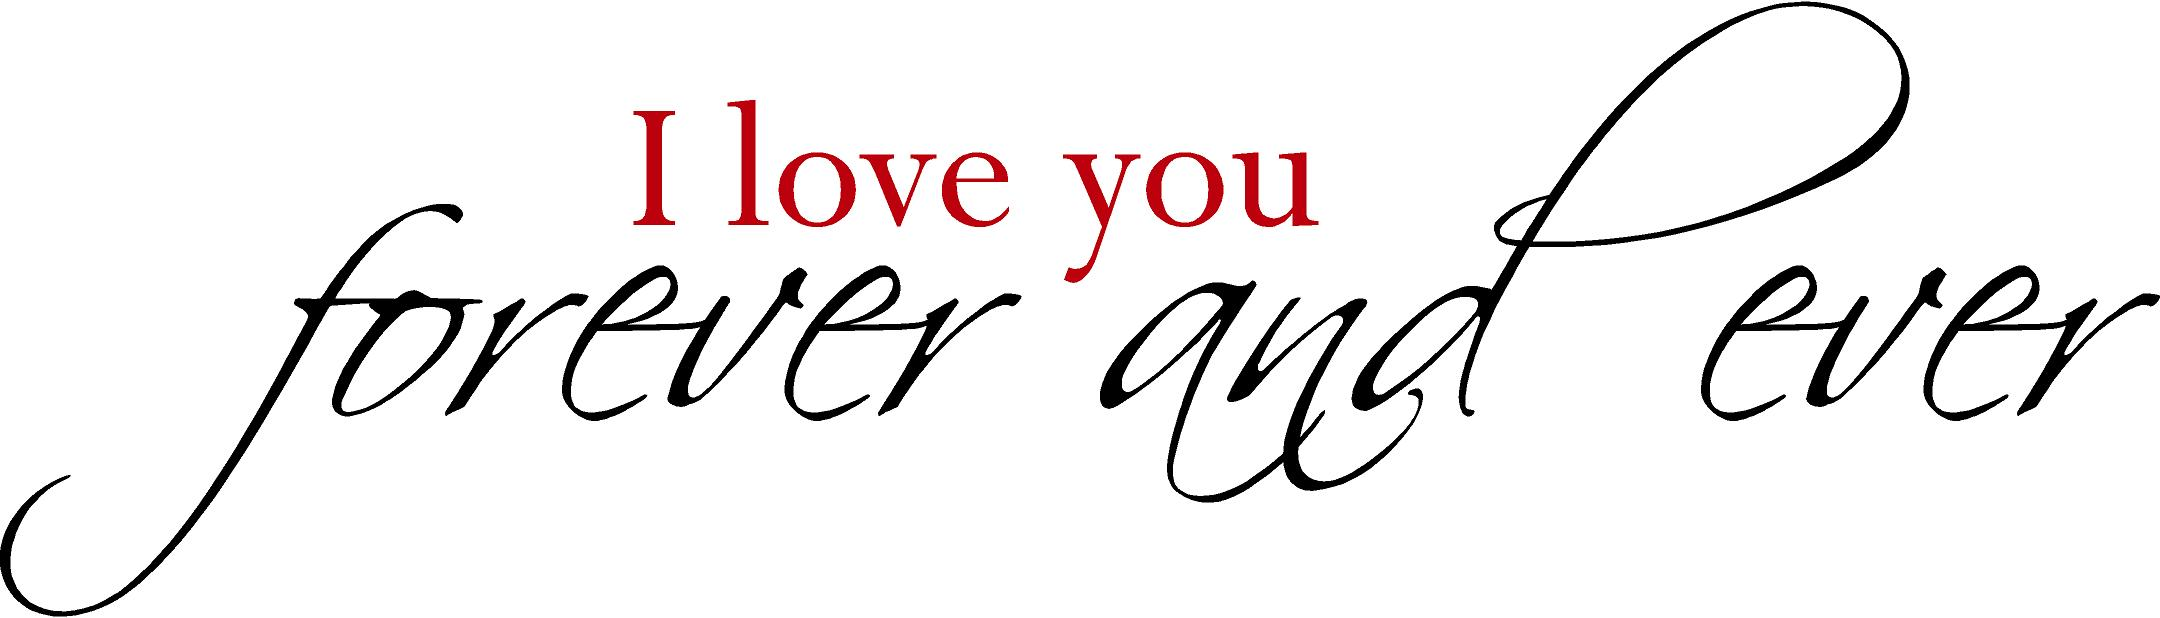 Love 4ever Quotes : Love You Forever And Ever Header Image